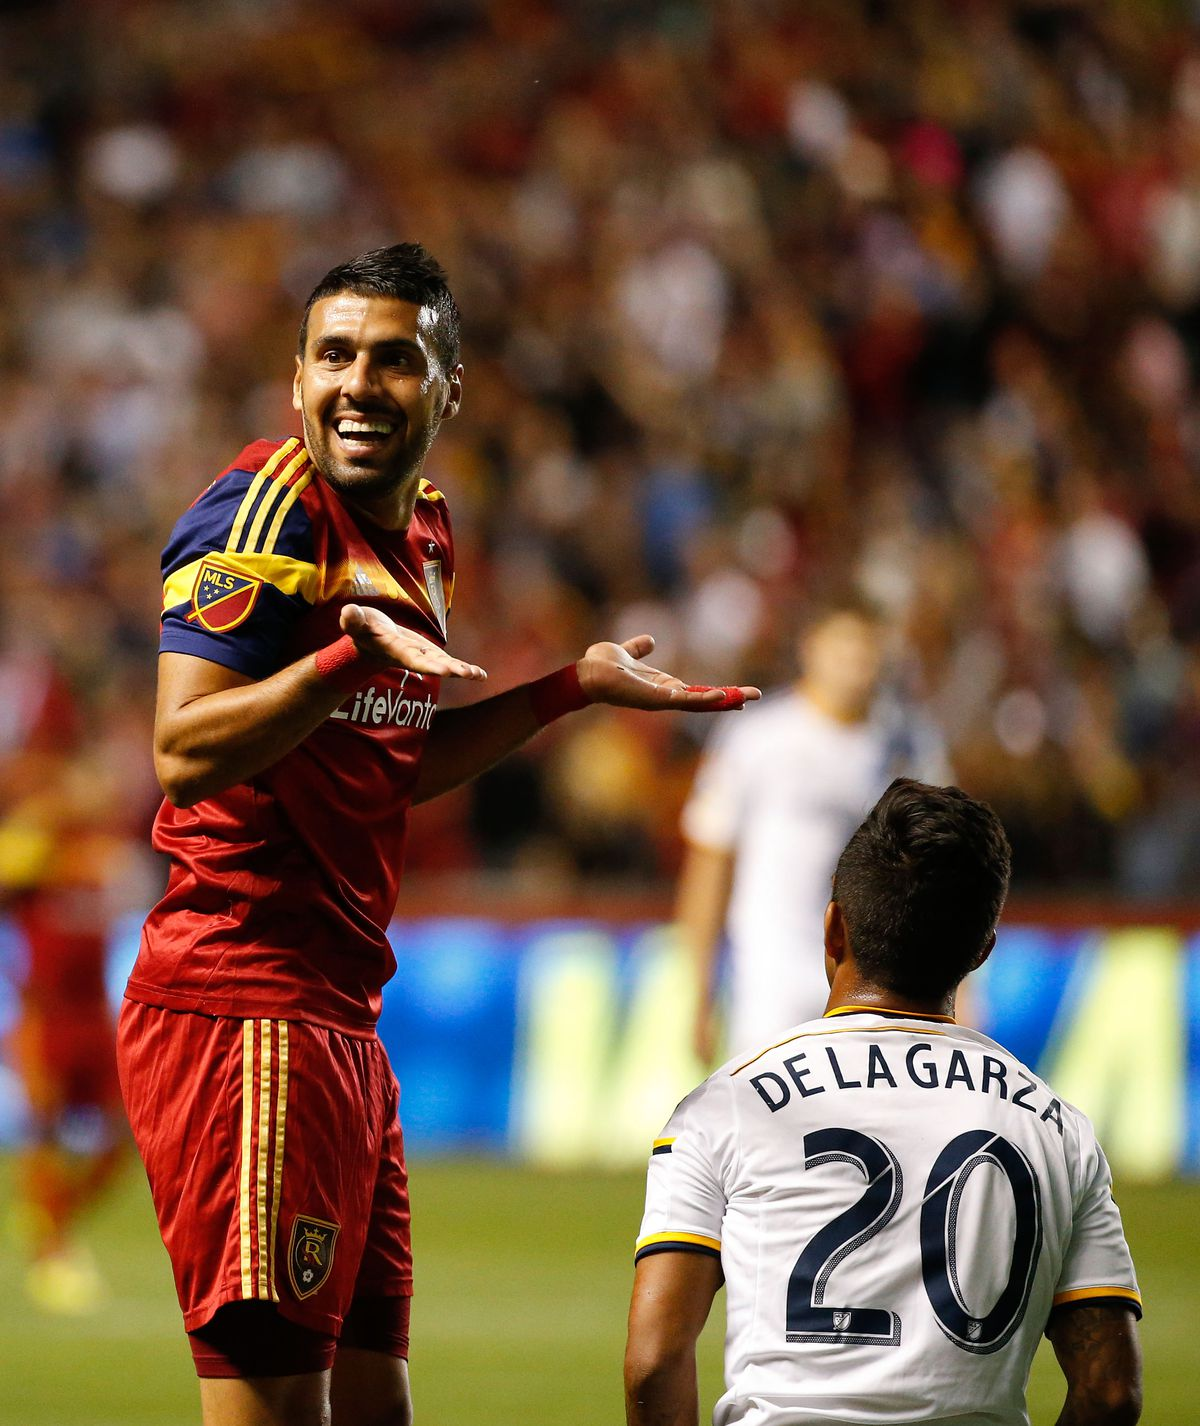 Sl Sports Bottle Rnd 650 Long: Five Reasons Why RSL Re-signed Javier Morales